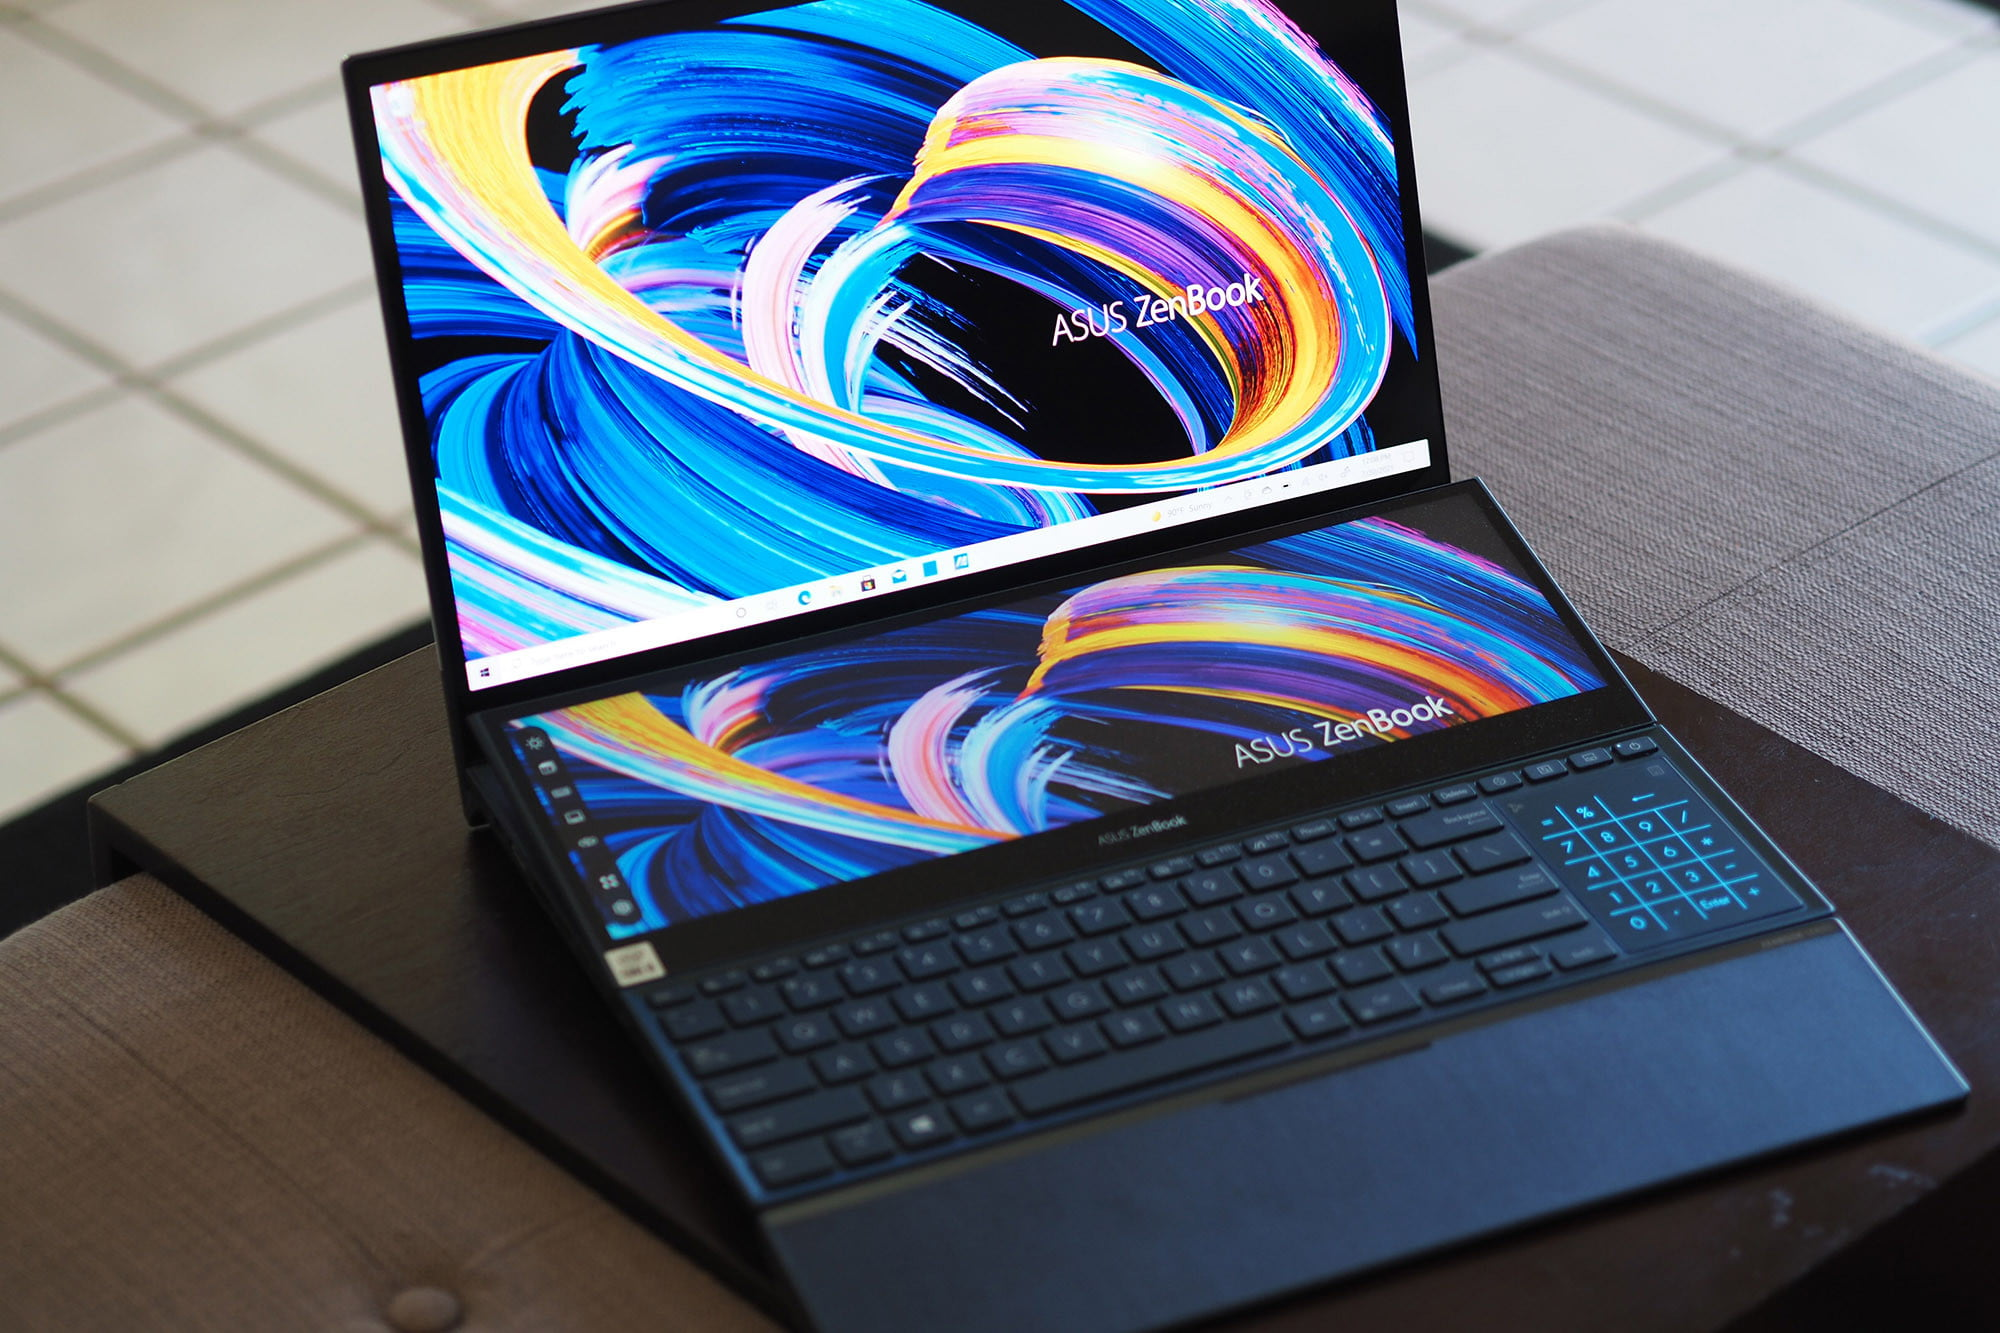 Asus ZenBook Pro Duo 15 OLED review: Dual screens, if you need them